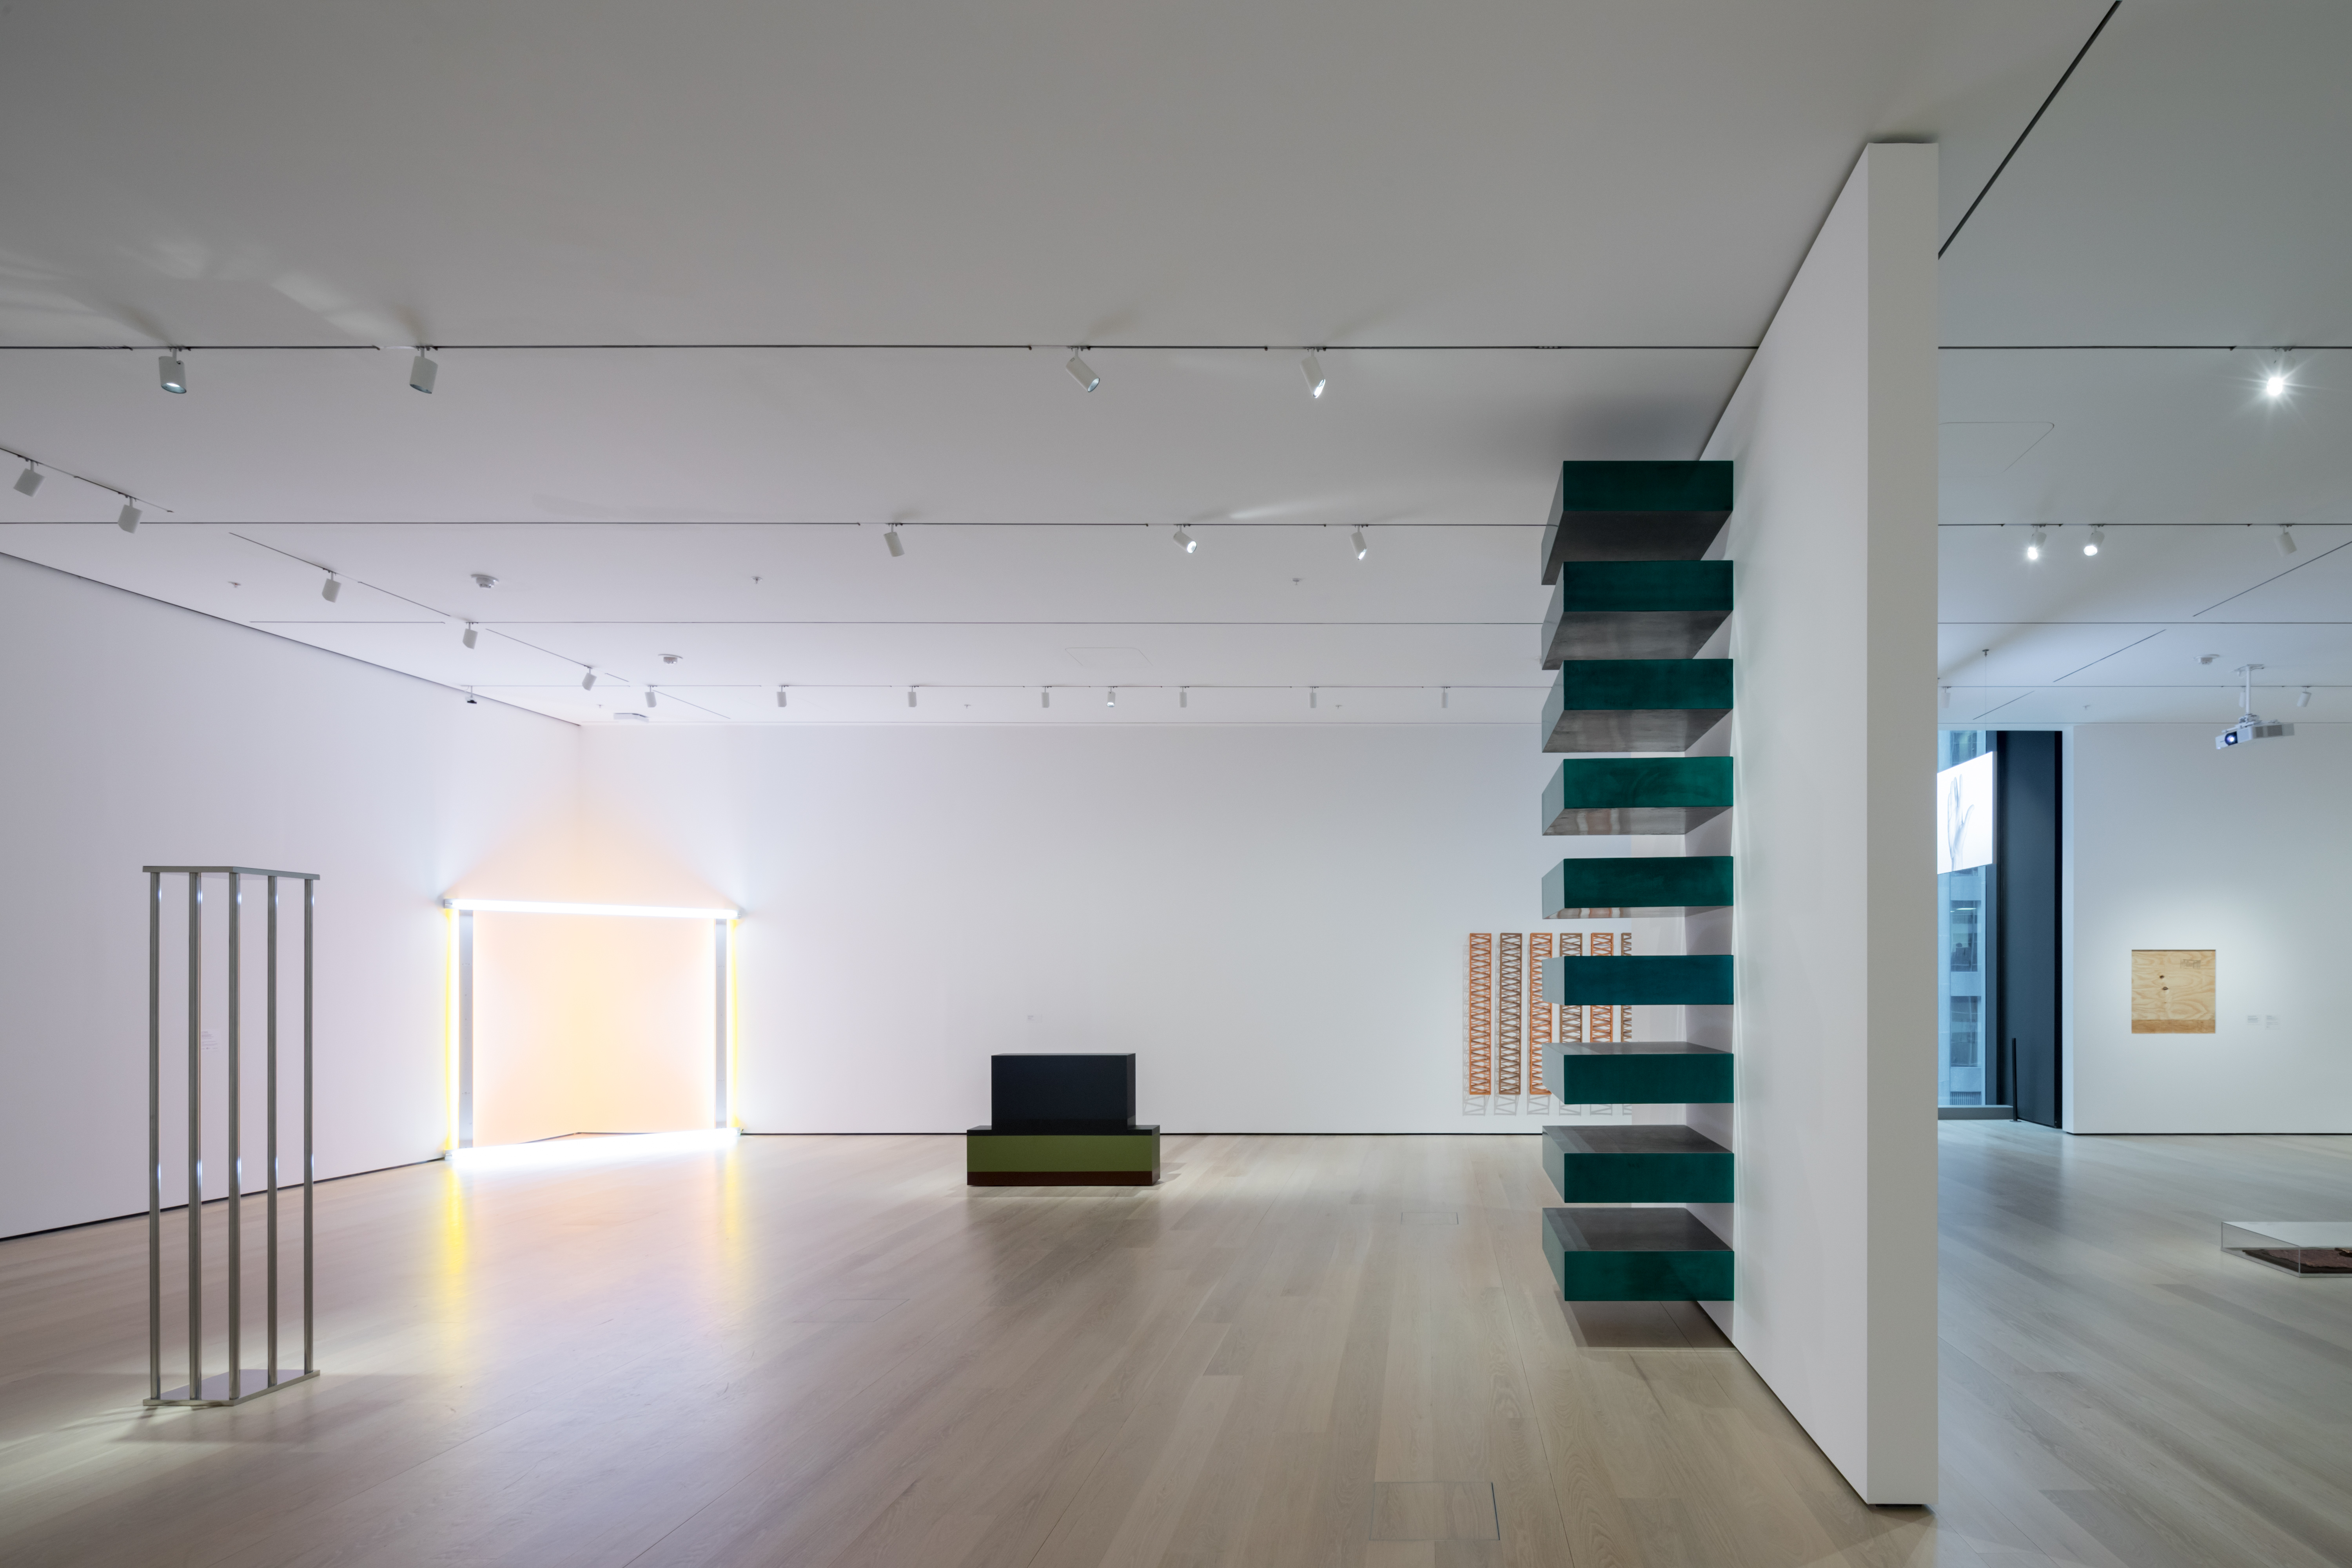 <p>MoMa Fase 2. Installation View of David Geffen Wing gallery 413, Breaking the Mold, The Museum of Modern Art Beeld Iwan Baan. Courtesey of MoMa</p>